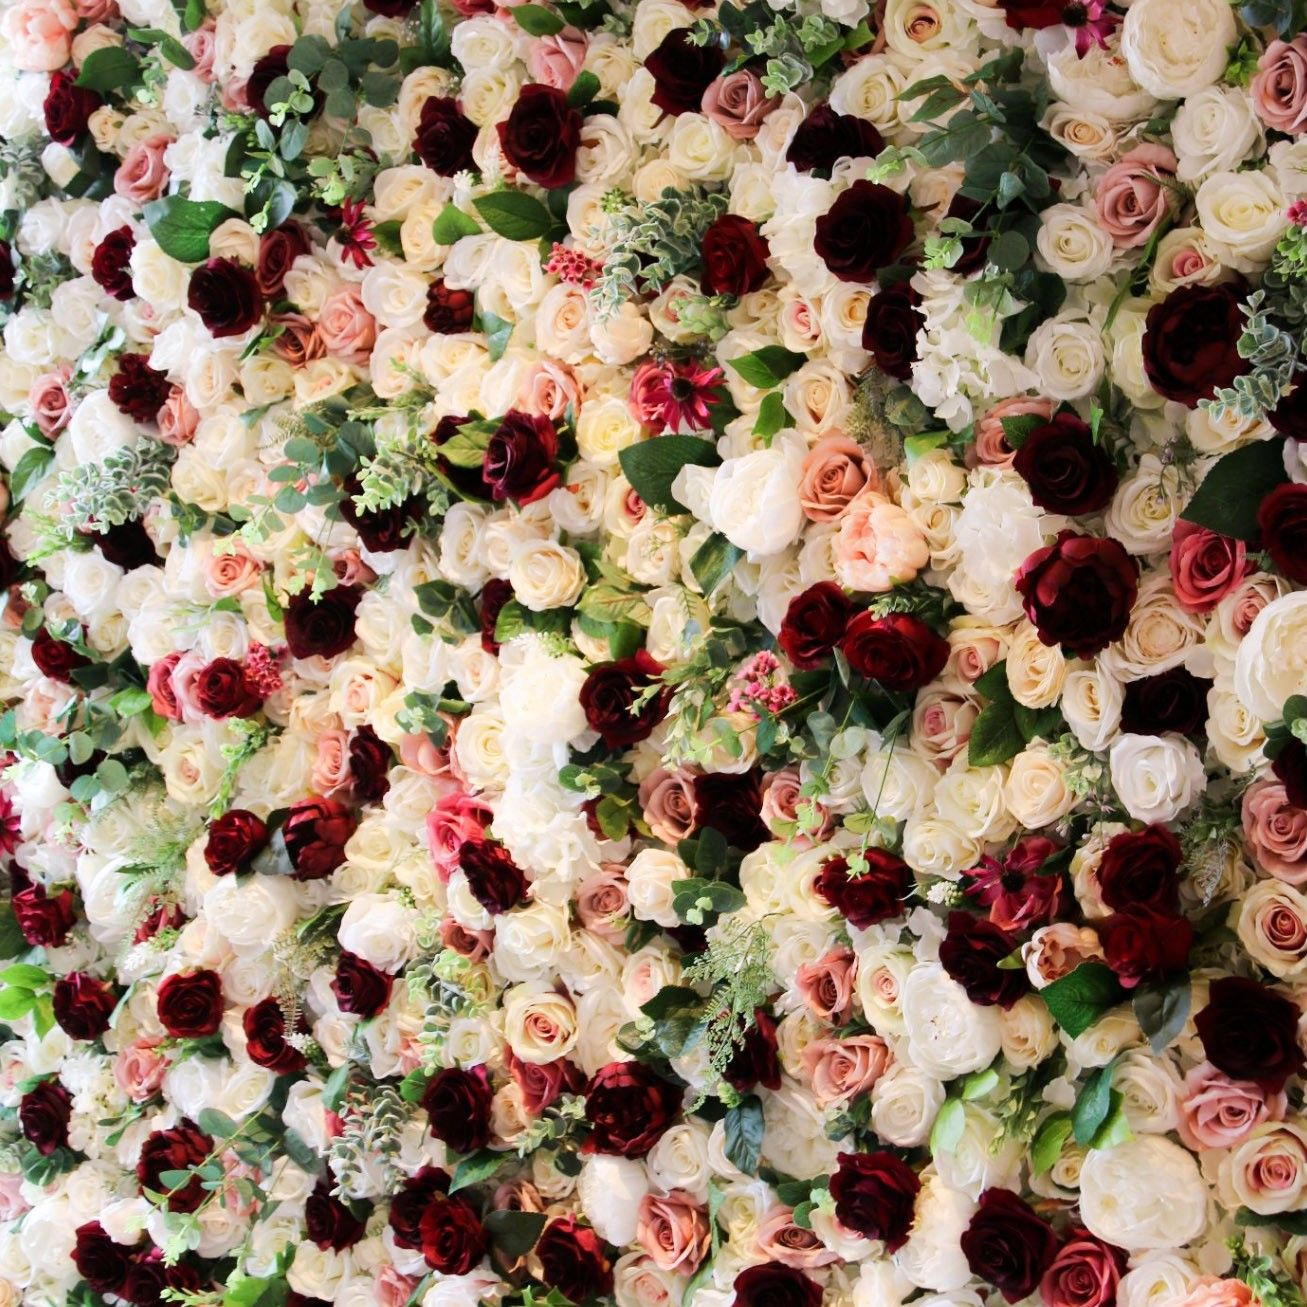 Wedding Flowers Cambridge: Flower Walls Of Cambridge Flowerwall In Rich, Burgundy